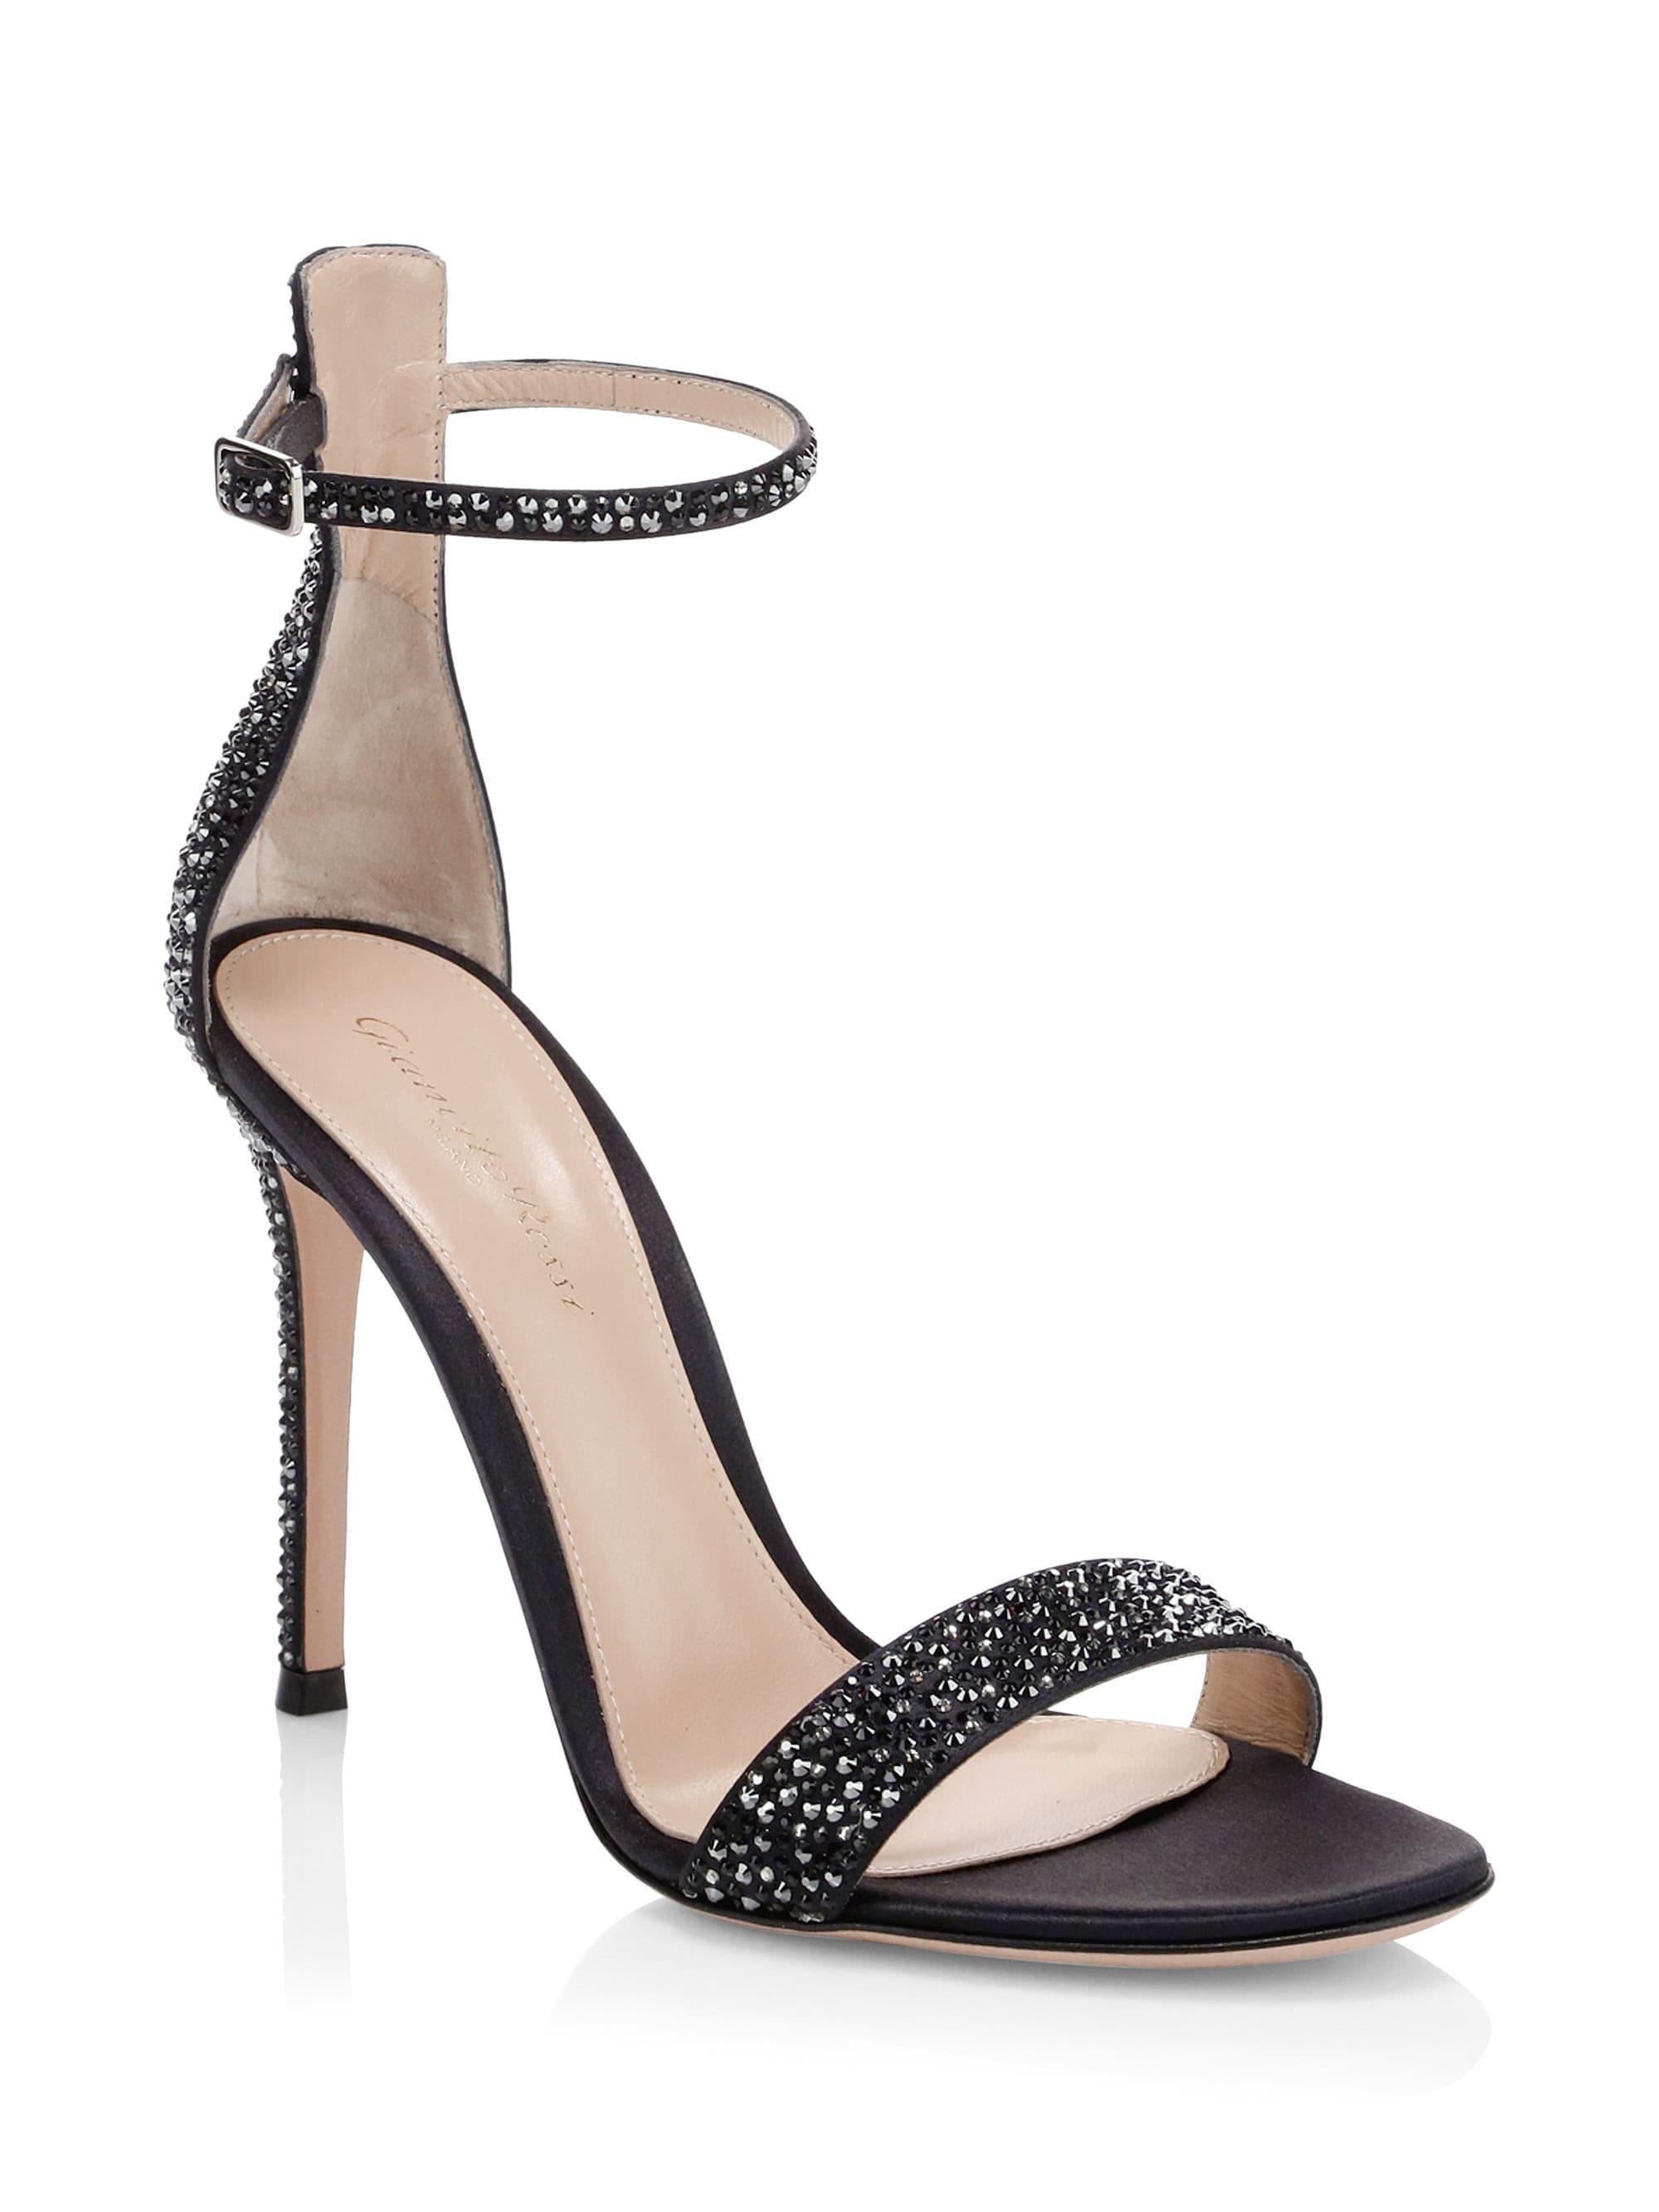 3c715146adc Lyst - Gianvito Rossi Silk Crystal Ankle-strap Sandals in Black